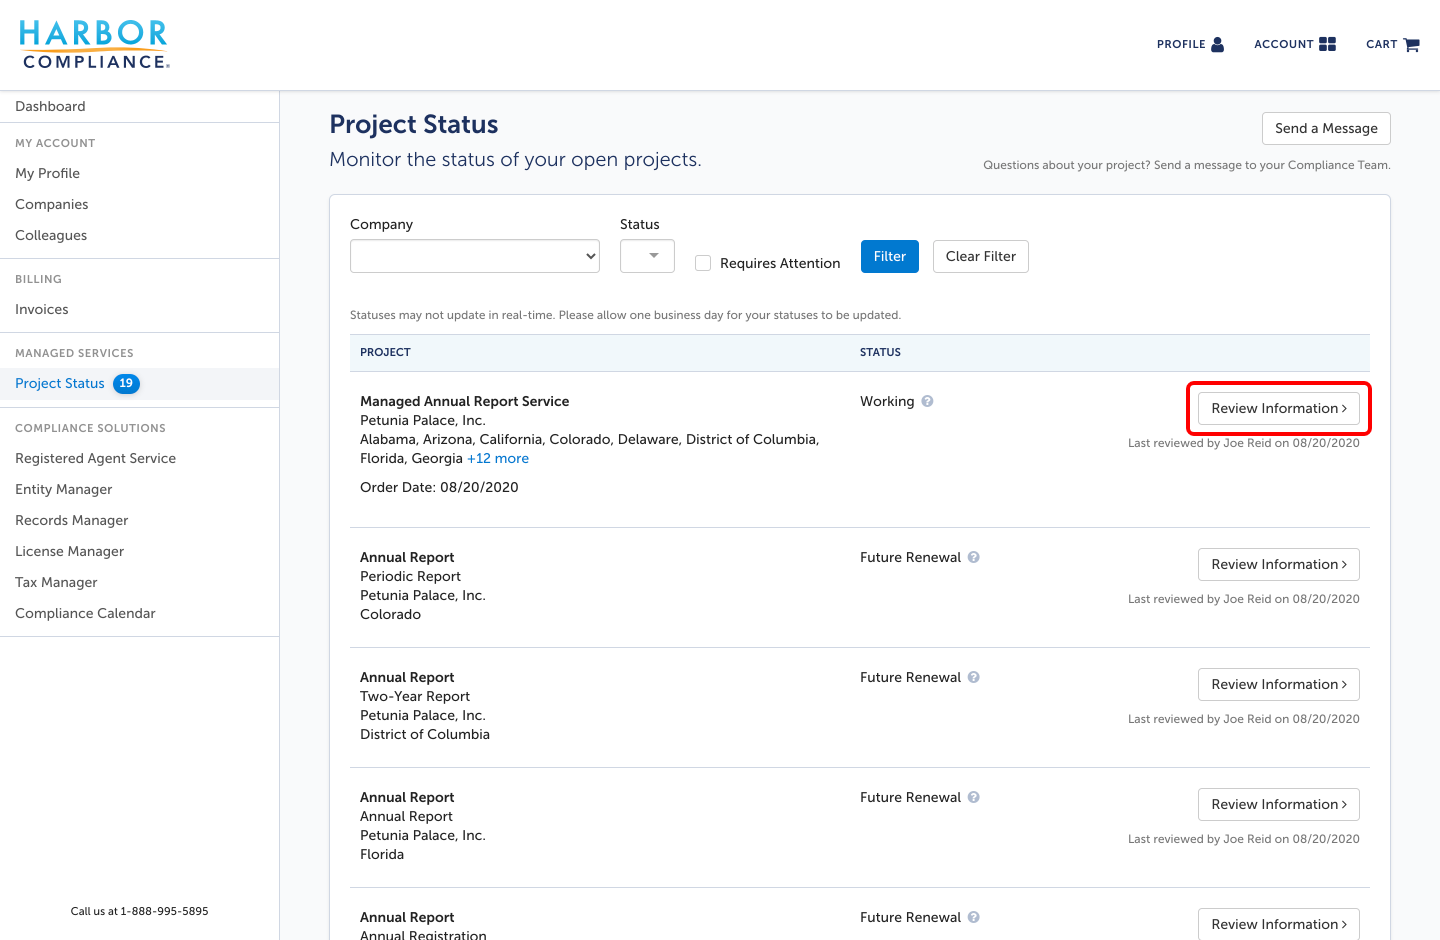 project-status-review-information.png